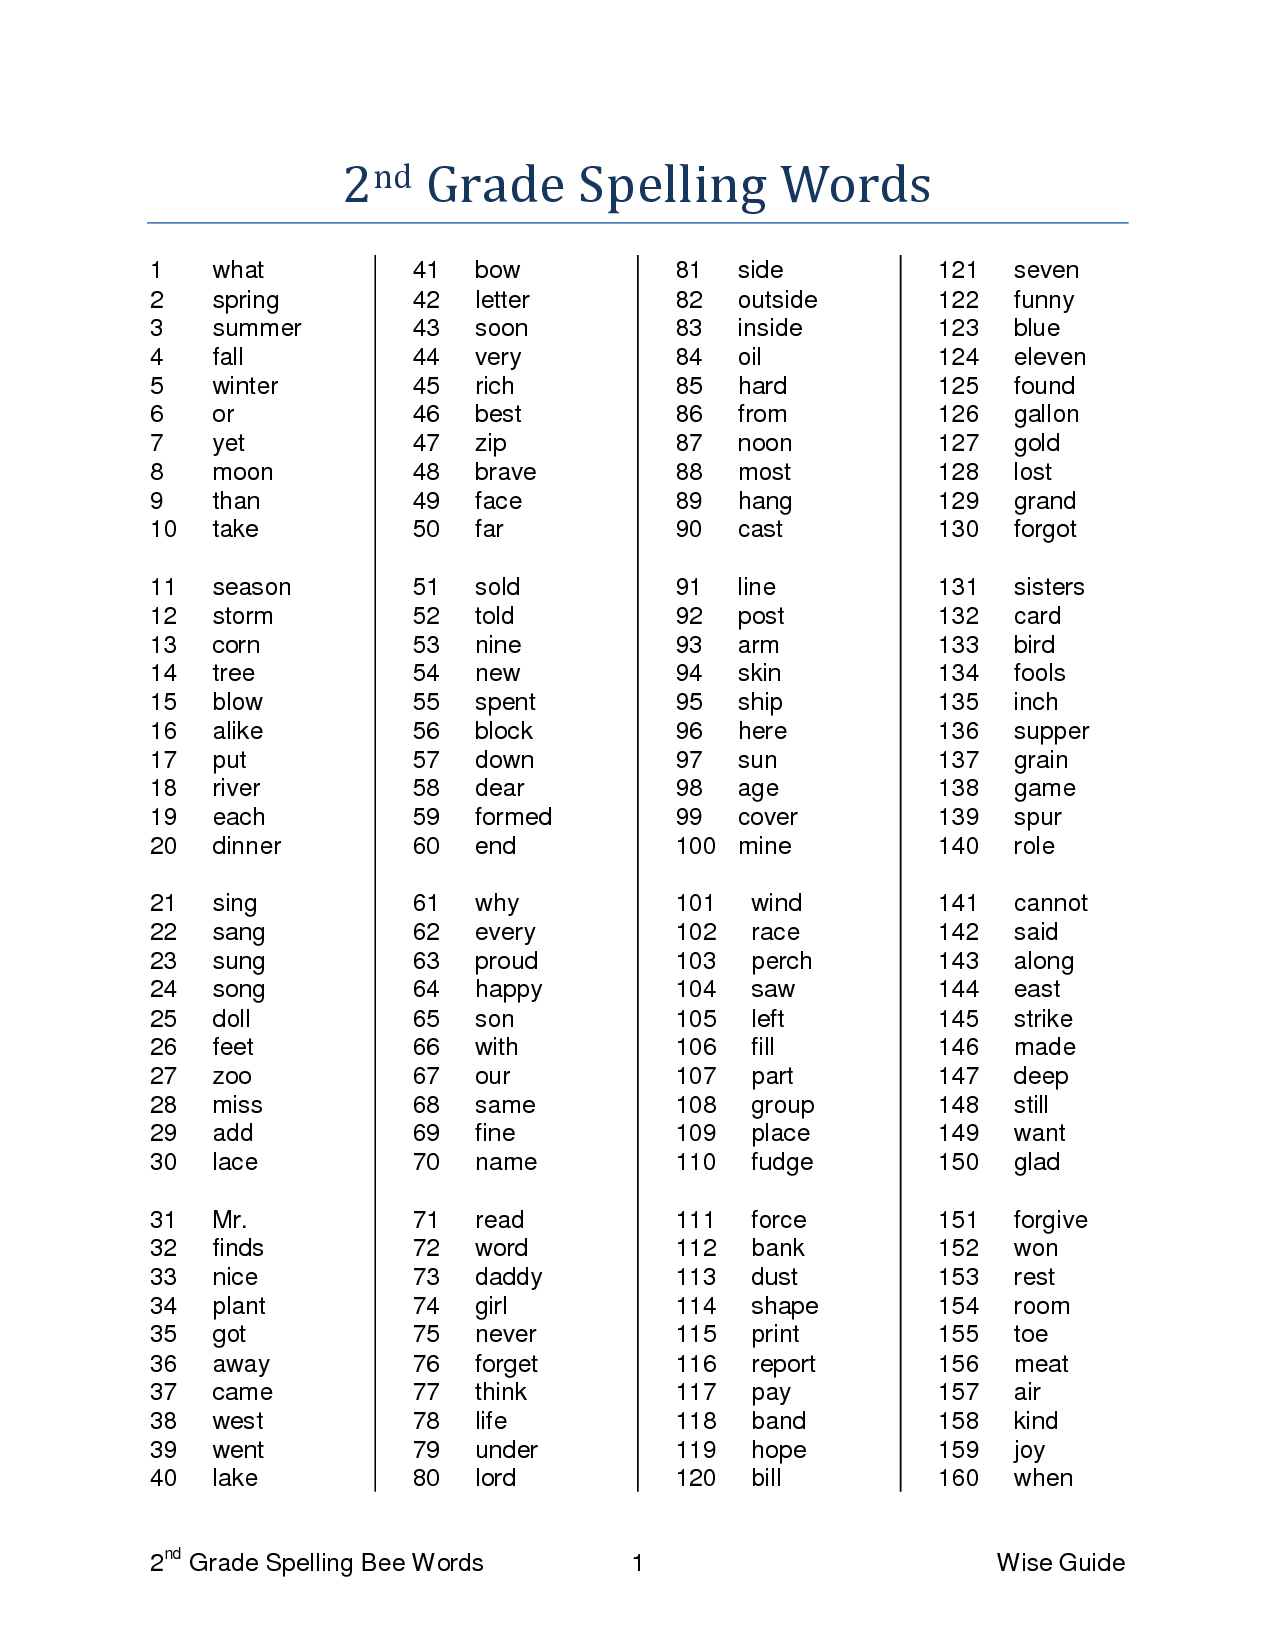 This Is A List Of Spelling Words For A 7th Grader I - Resume